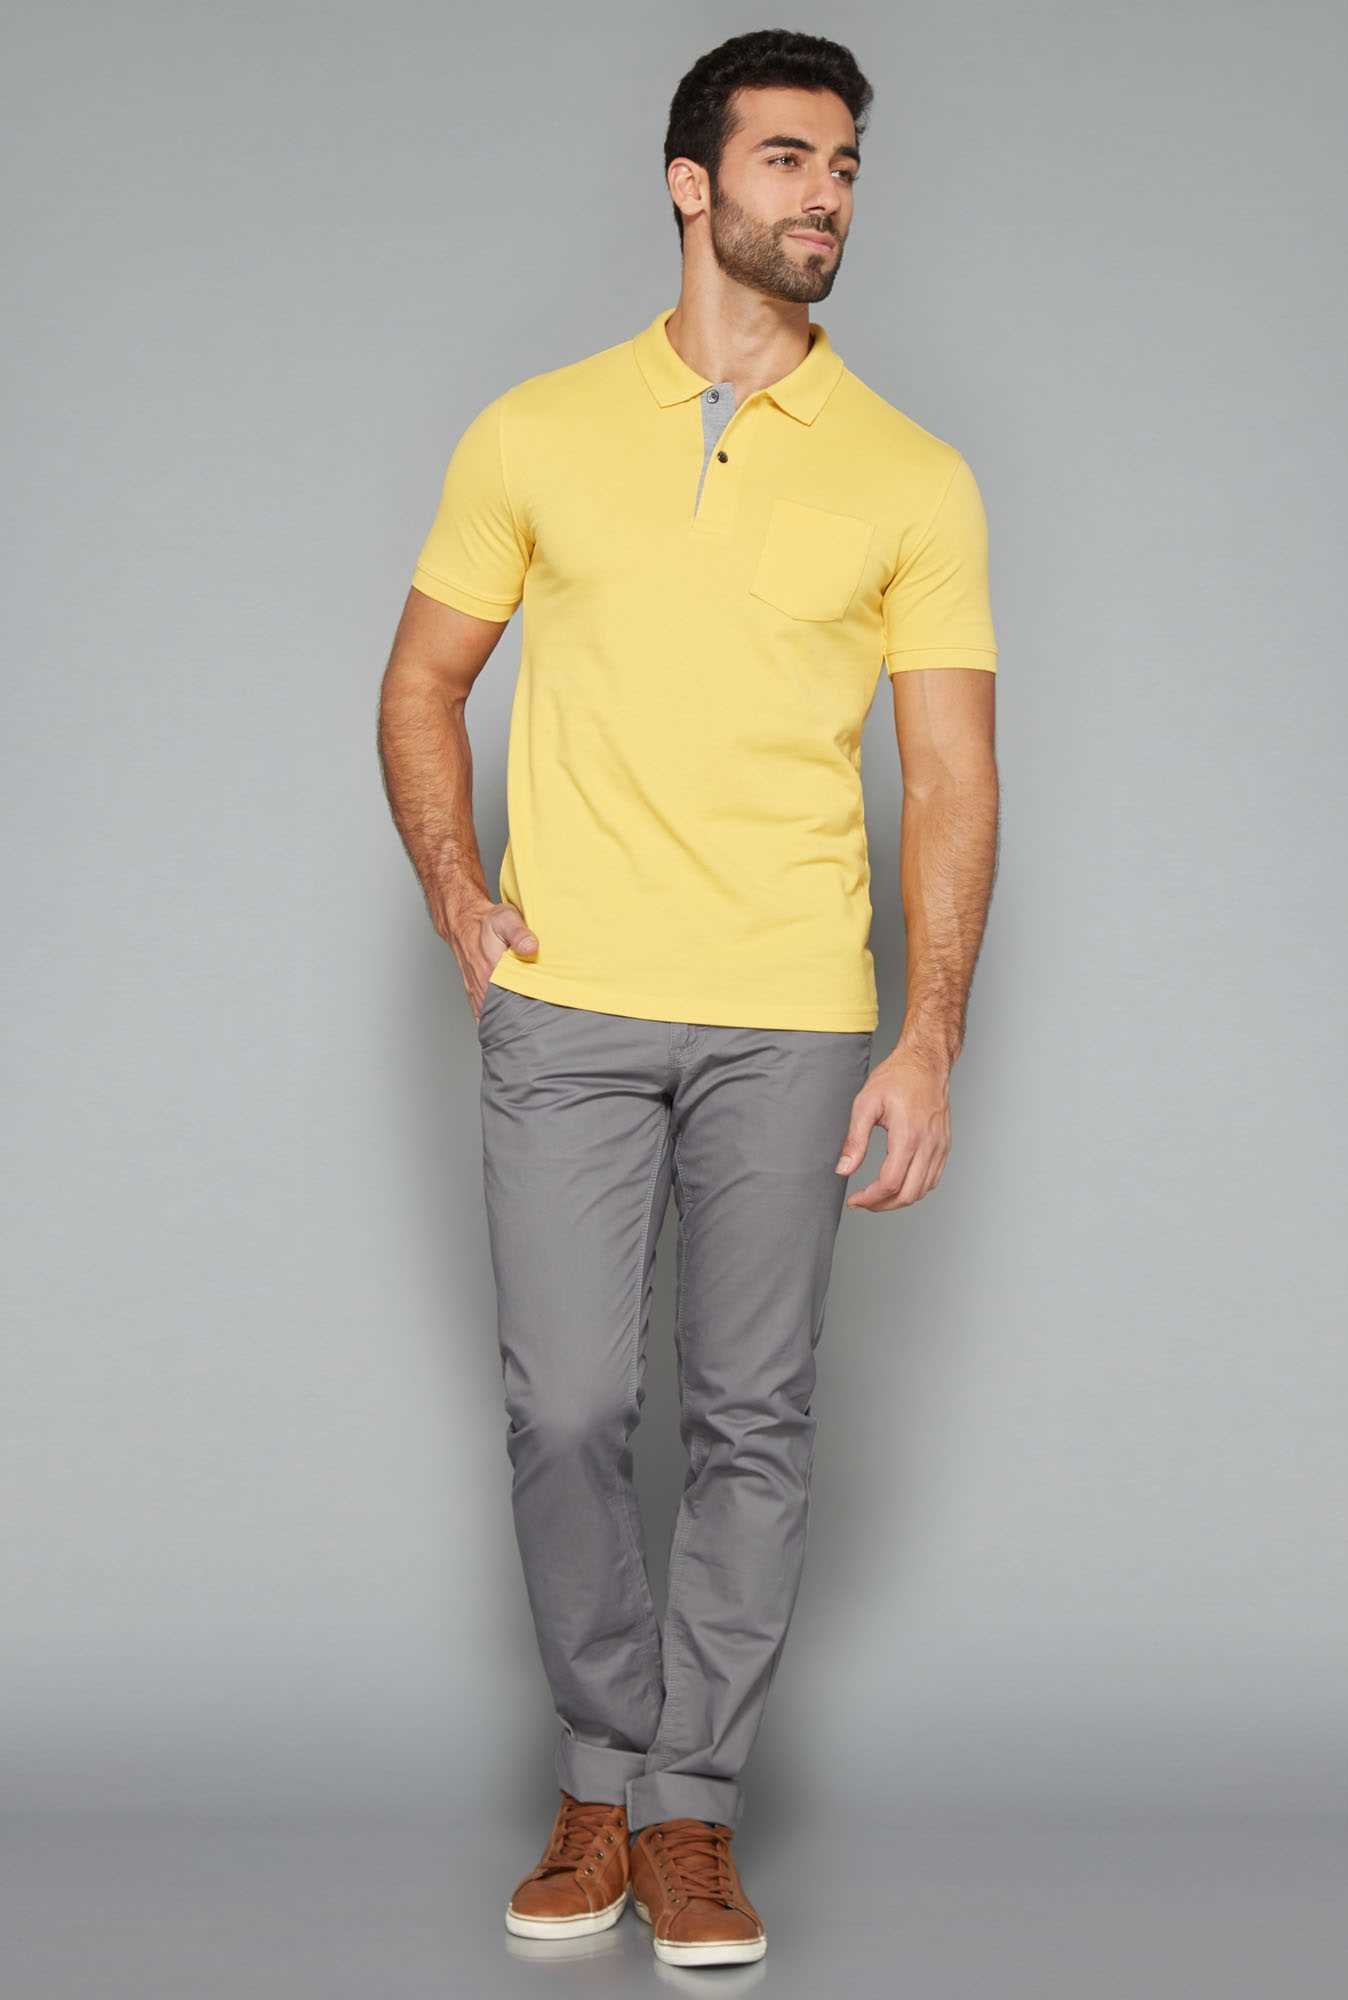 Westsport Mens Yellow Polo T Shirt